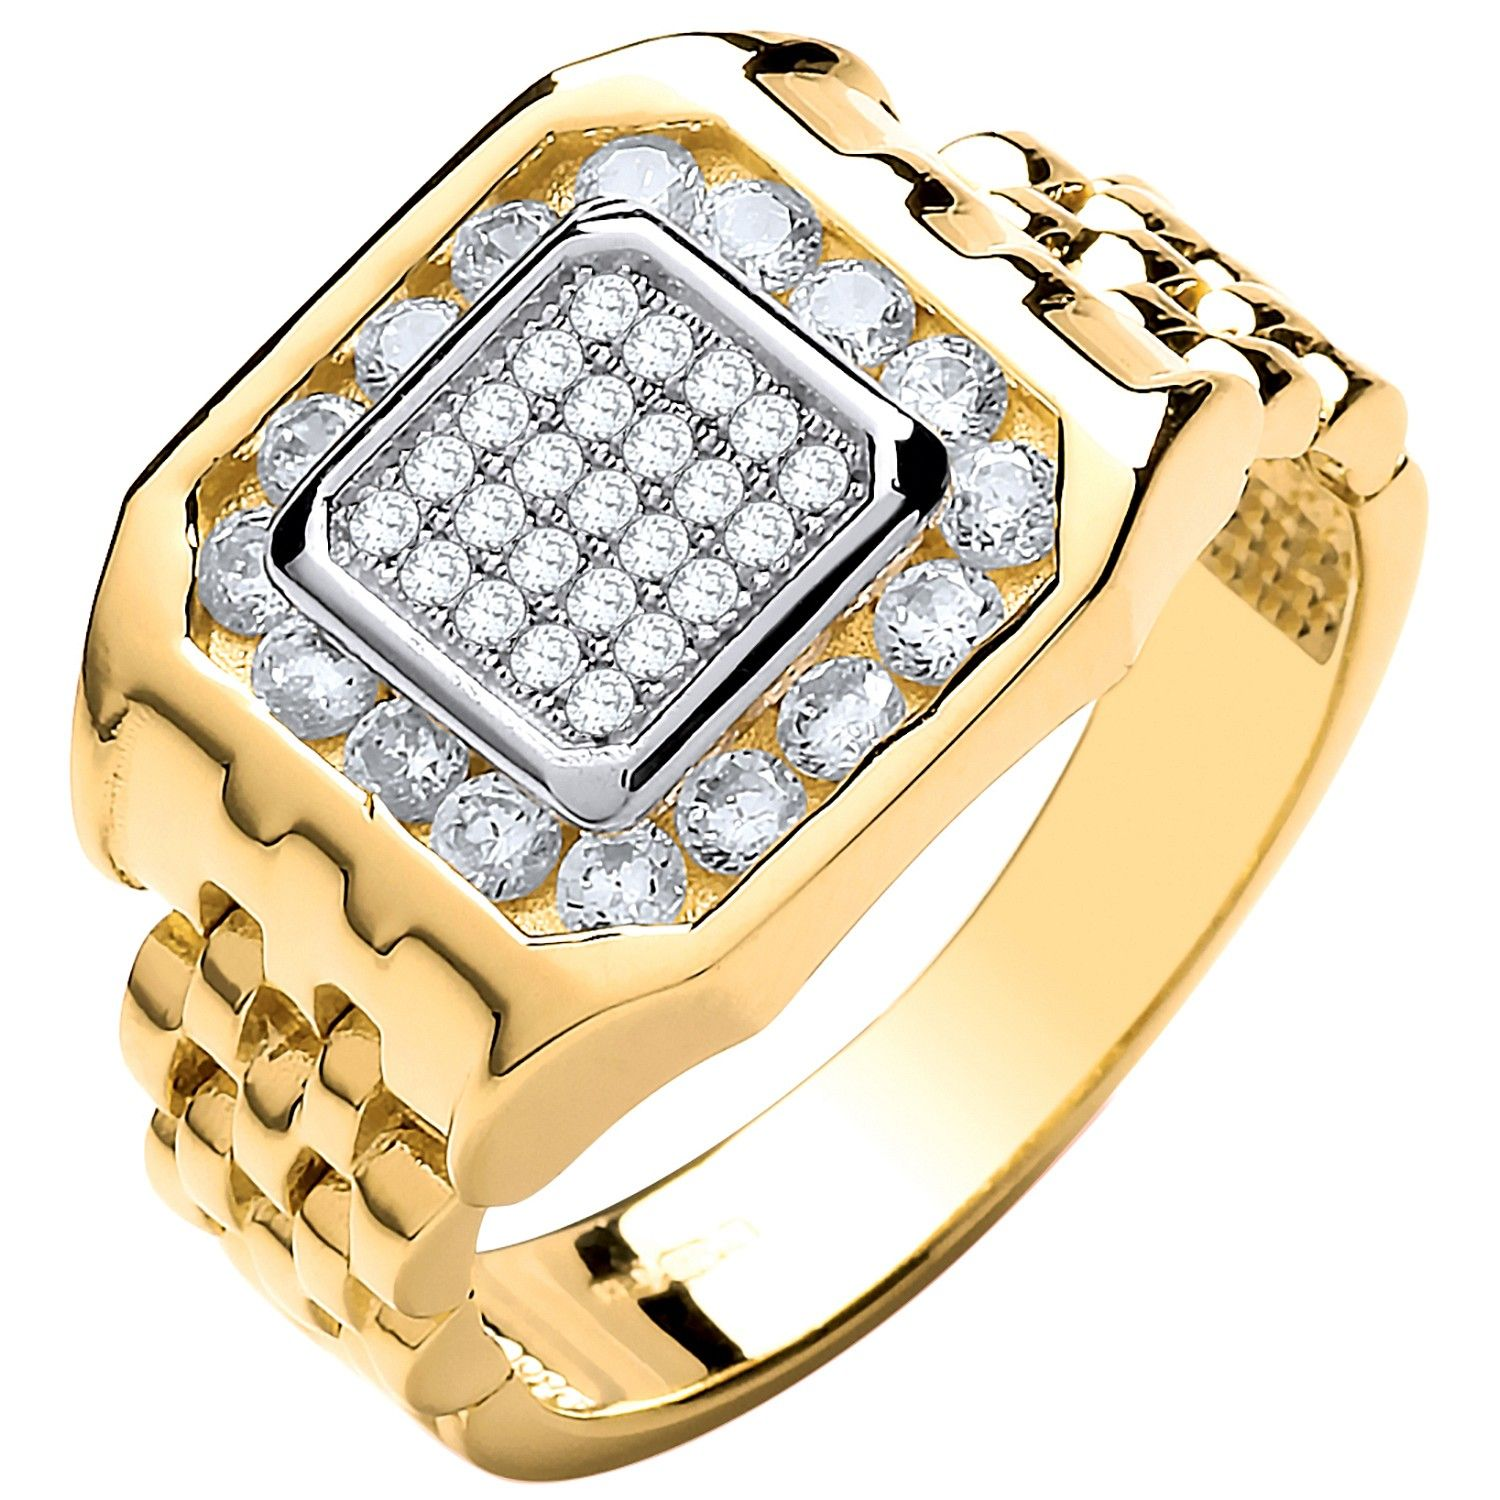 9ct Yellow Gold Panther Link & CZ's Gents Ring